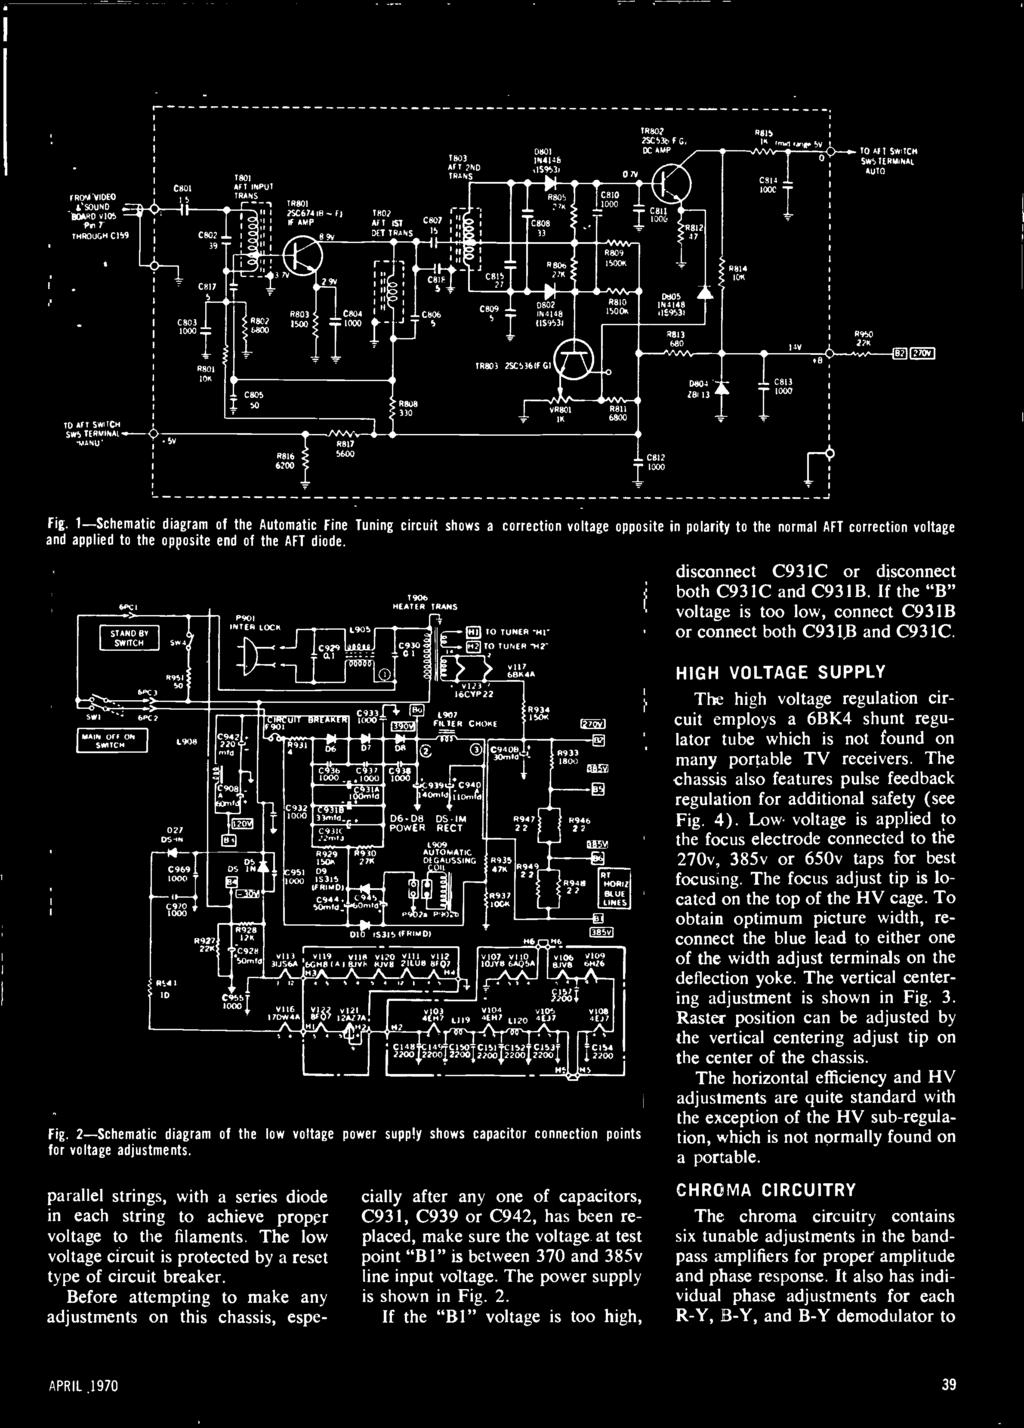 hight resolution of 1 schematic diagram of the automatic fine tuning circuit shows a and applied to the